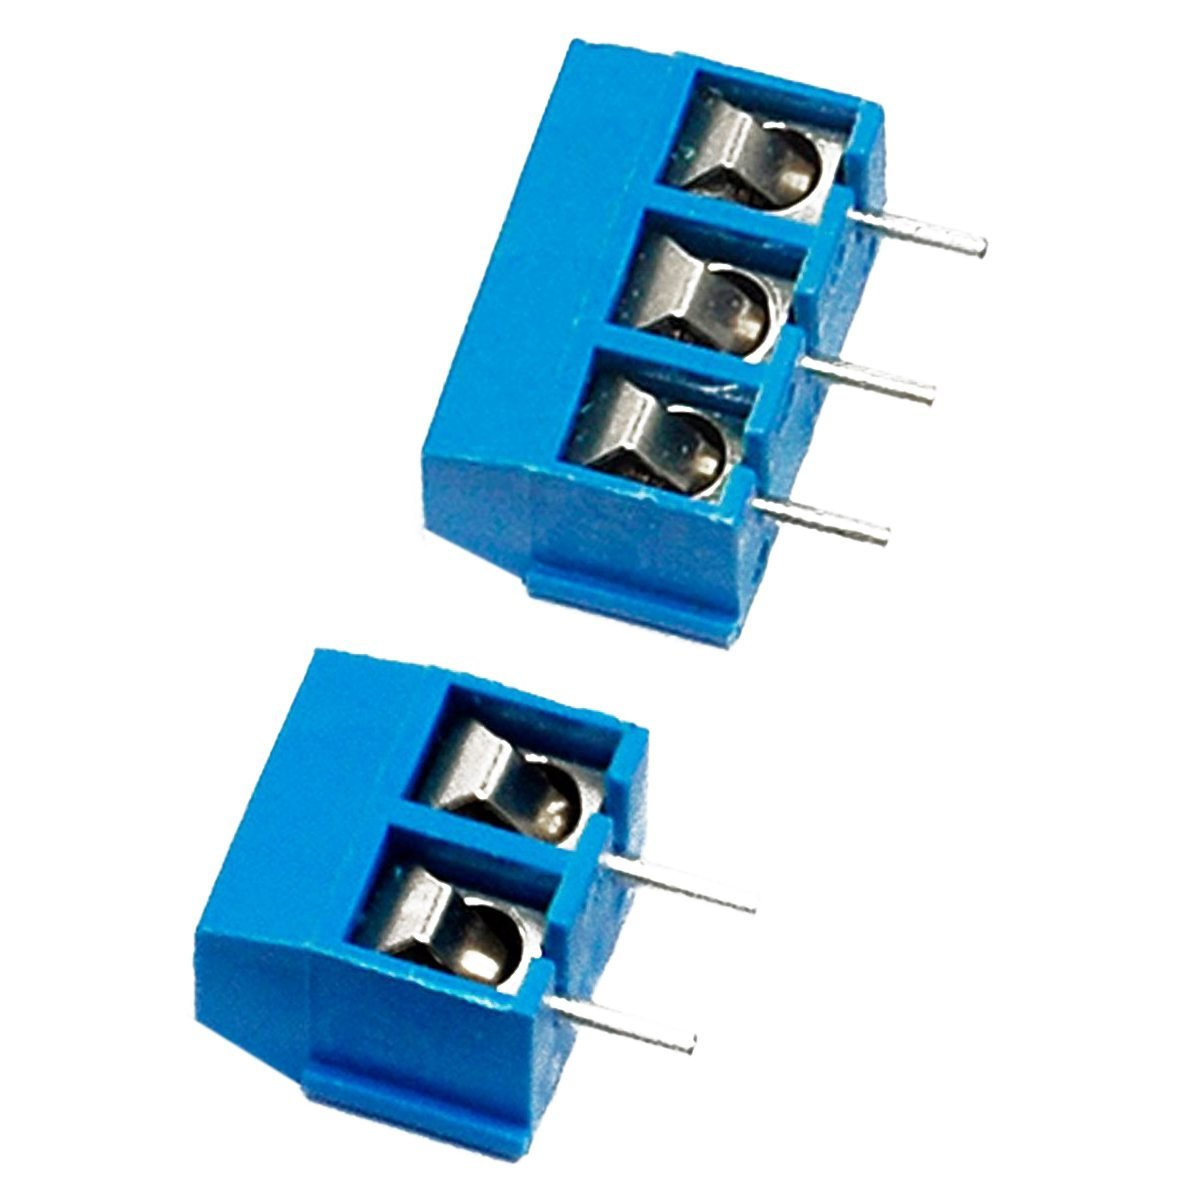 SODIAL(R) 2 Pin and 3 Pin Screw Terminal Block Connector 5mm Pitch for Arduino (Pack of 40pcs) EK8365